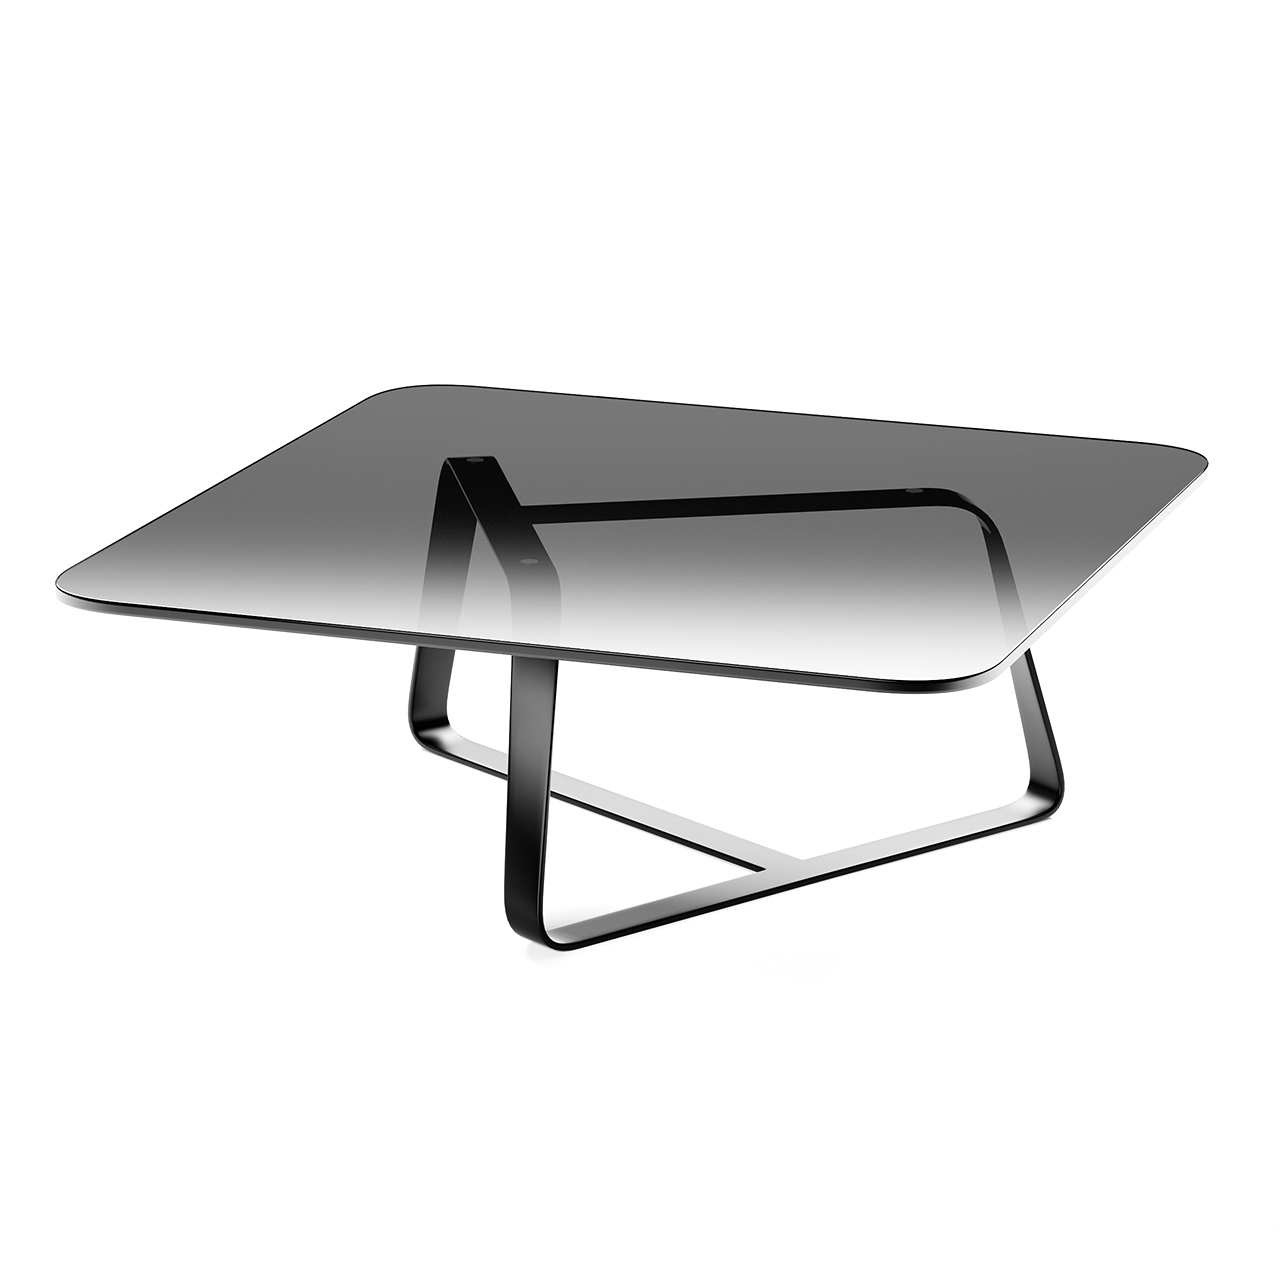 Twister Small Table Square by Desalto